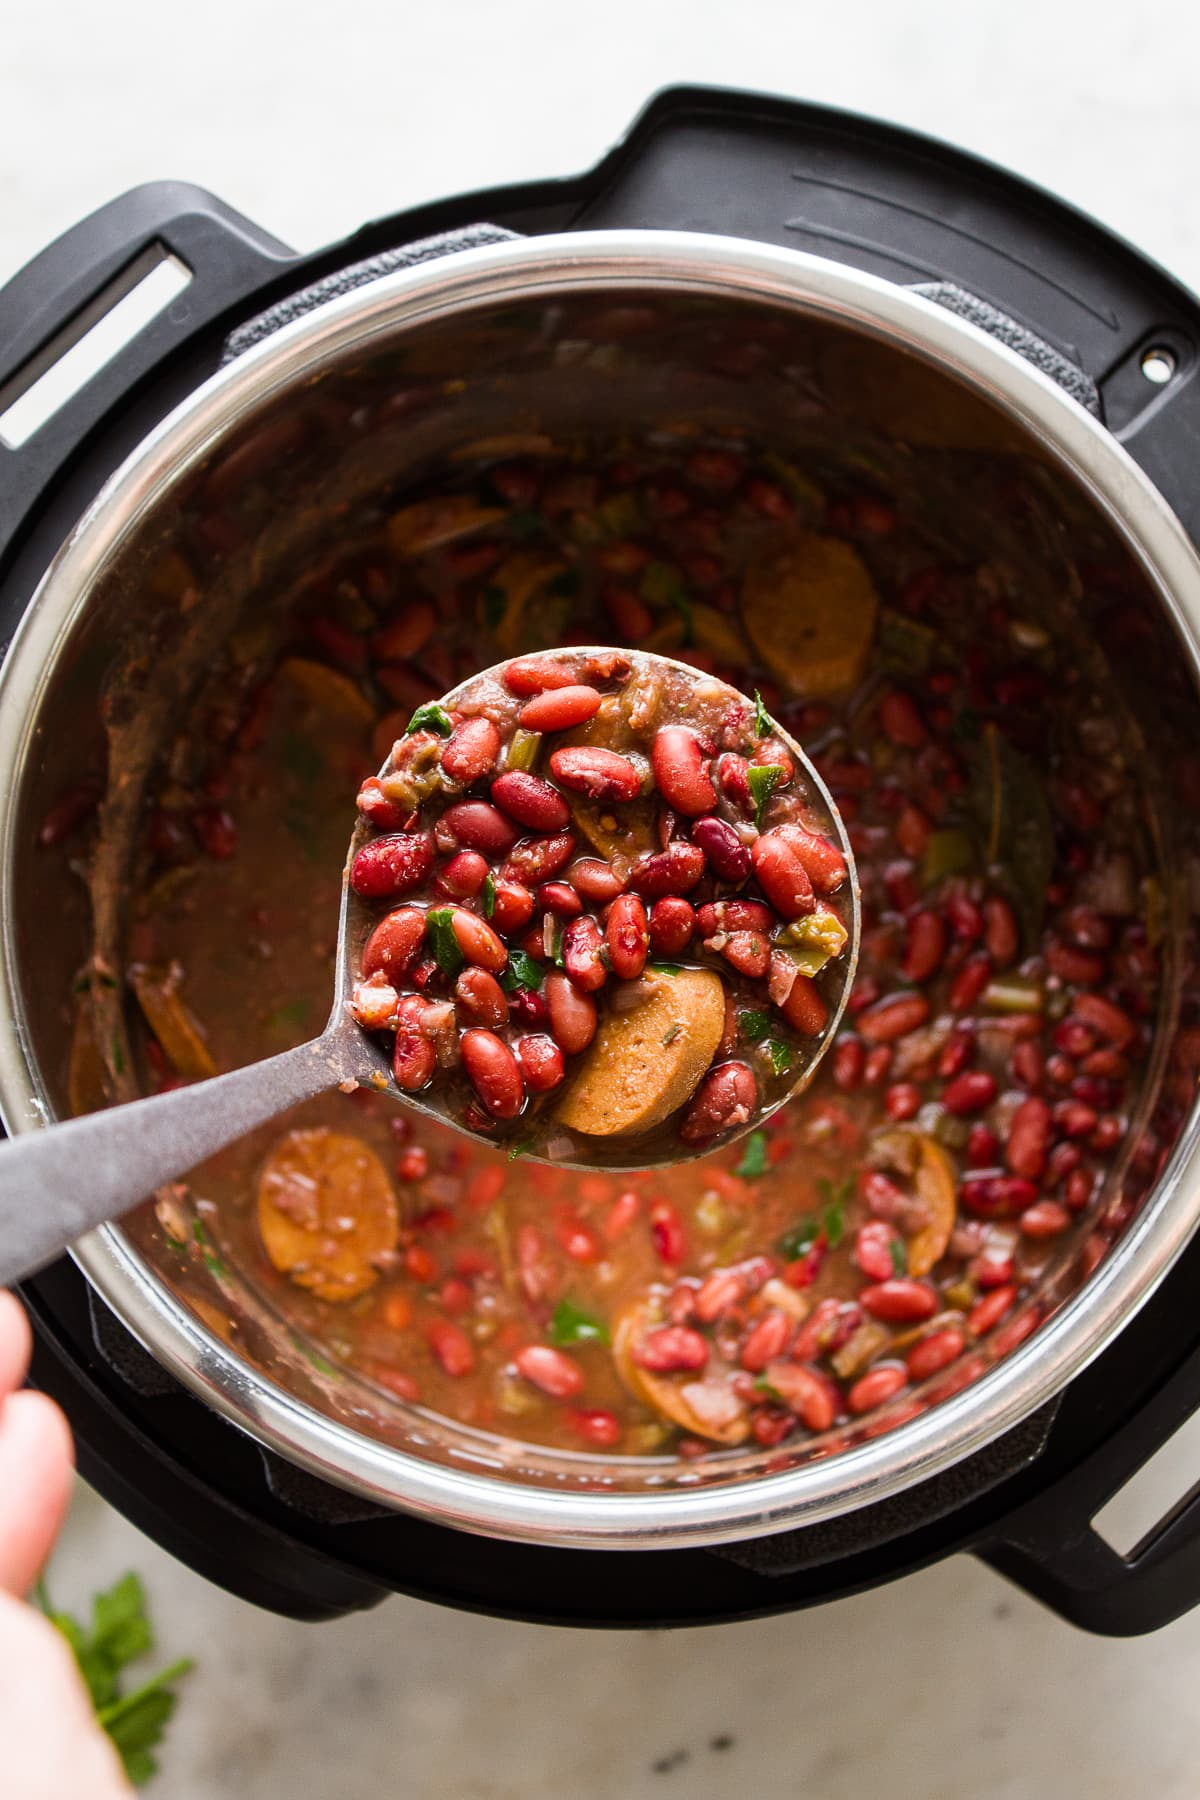 top down view of an instant pot with a ladle holding a ladle full of cajun style red beans.